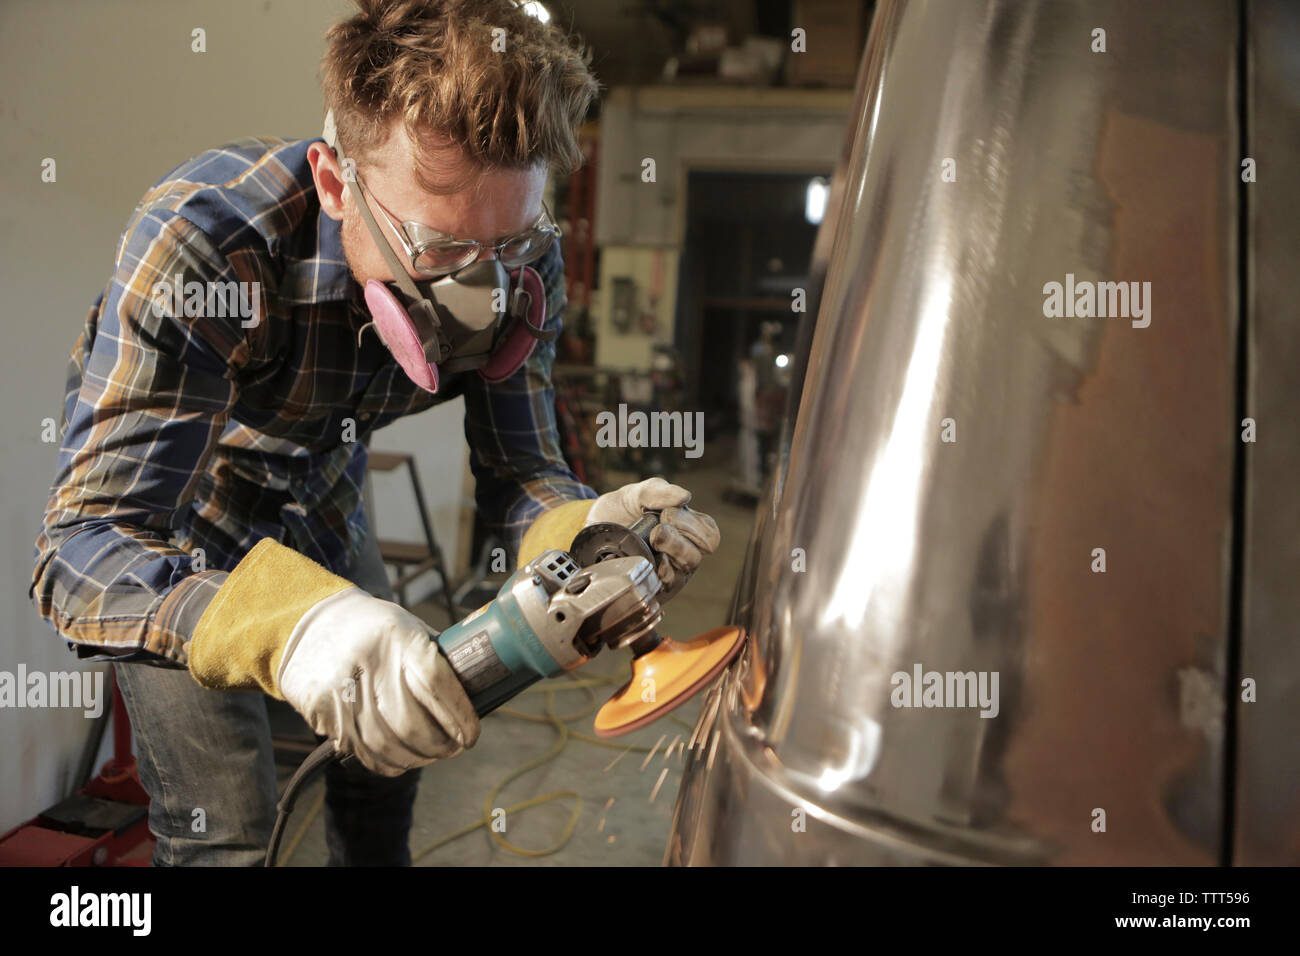 Engineer polishing damaged van with angle grinder in factory - Stock Image